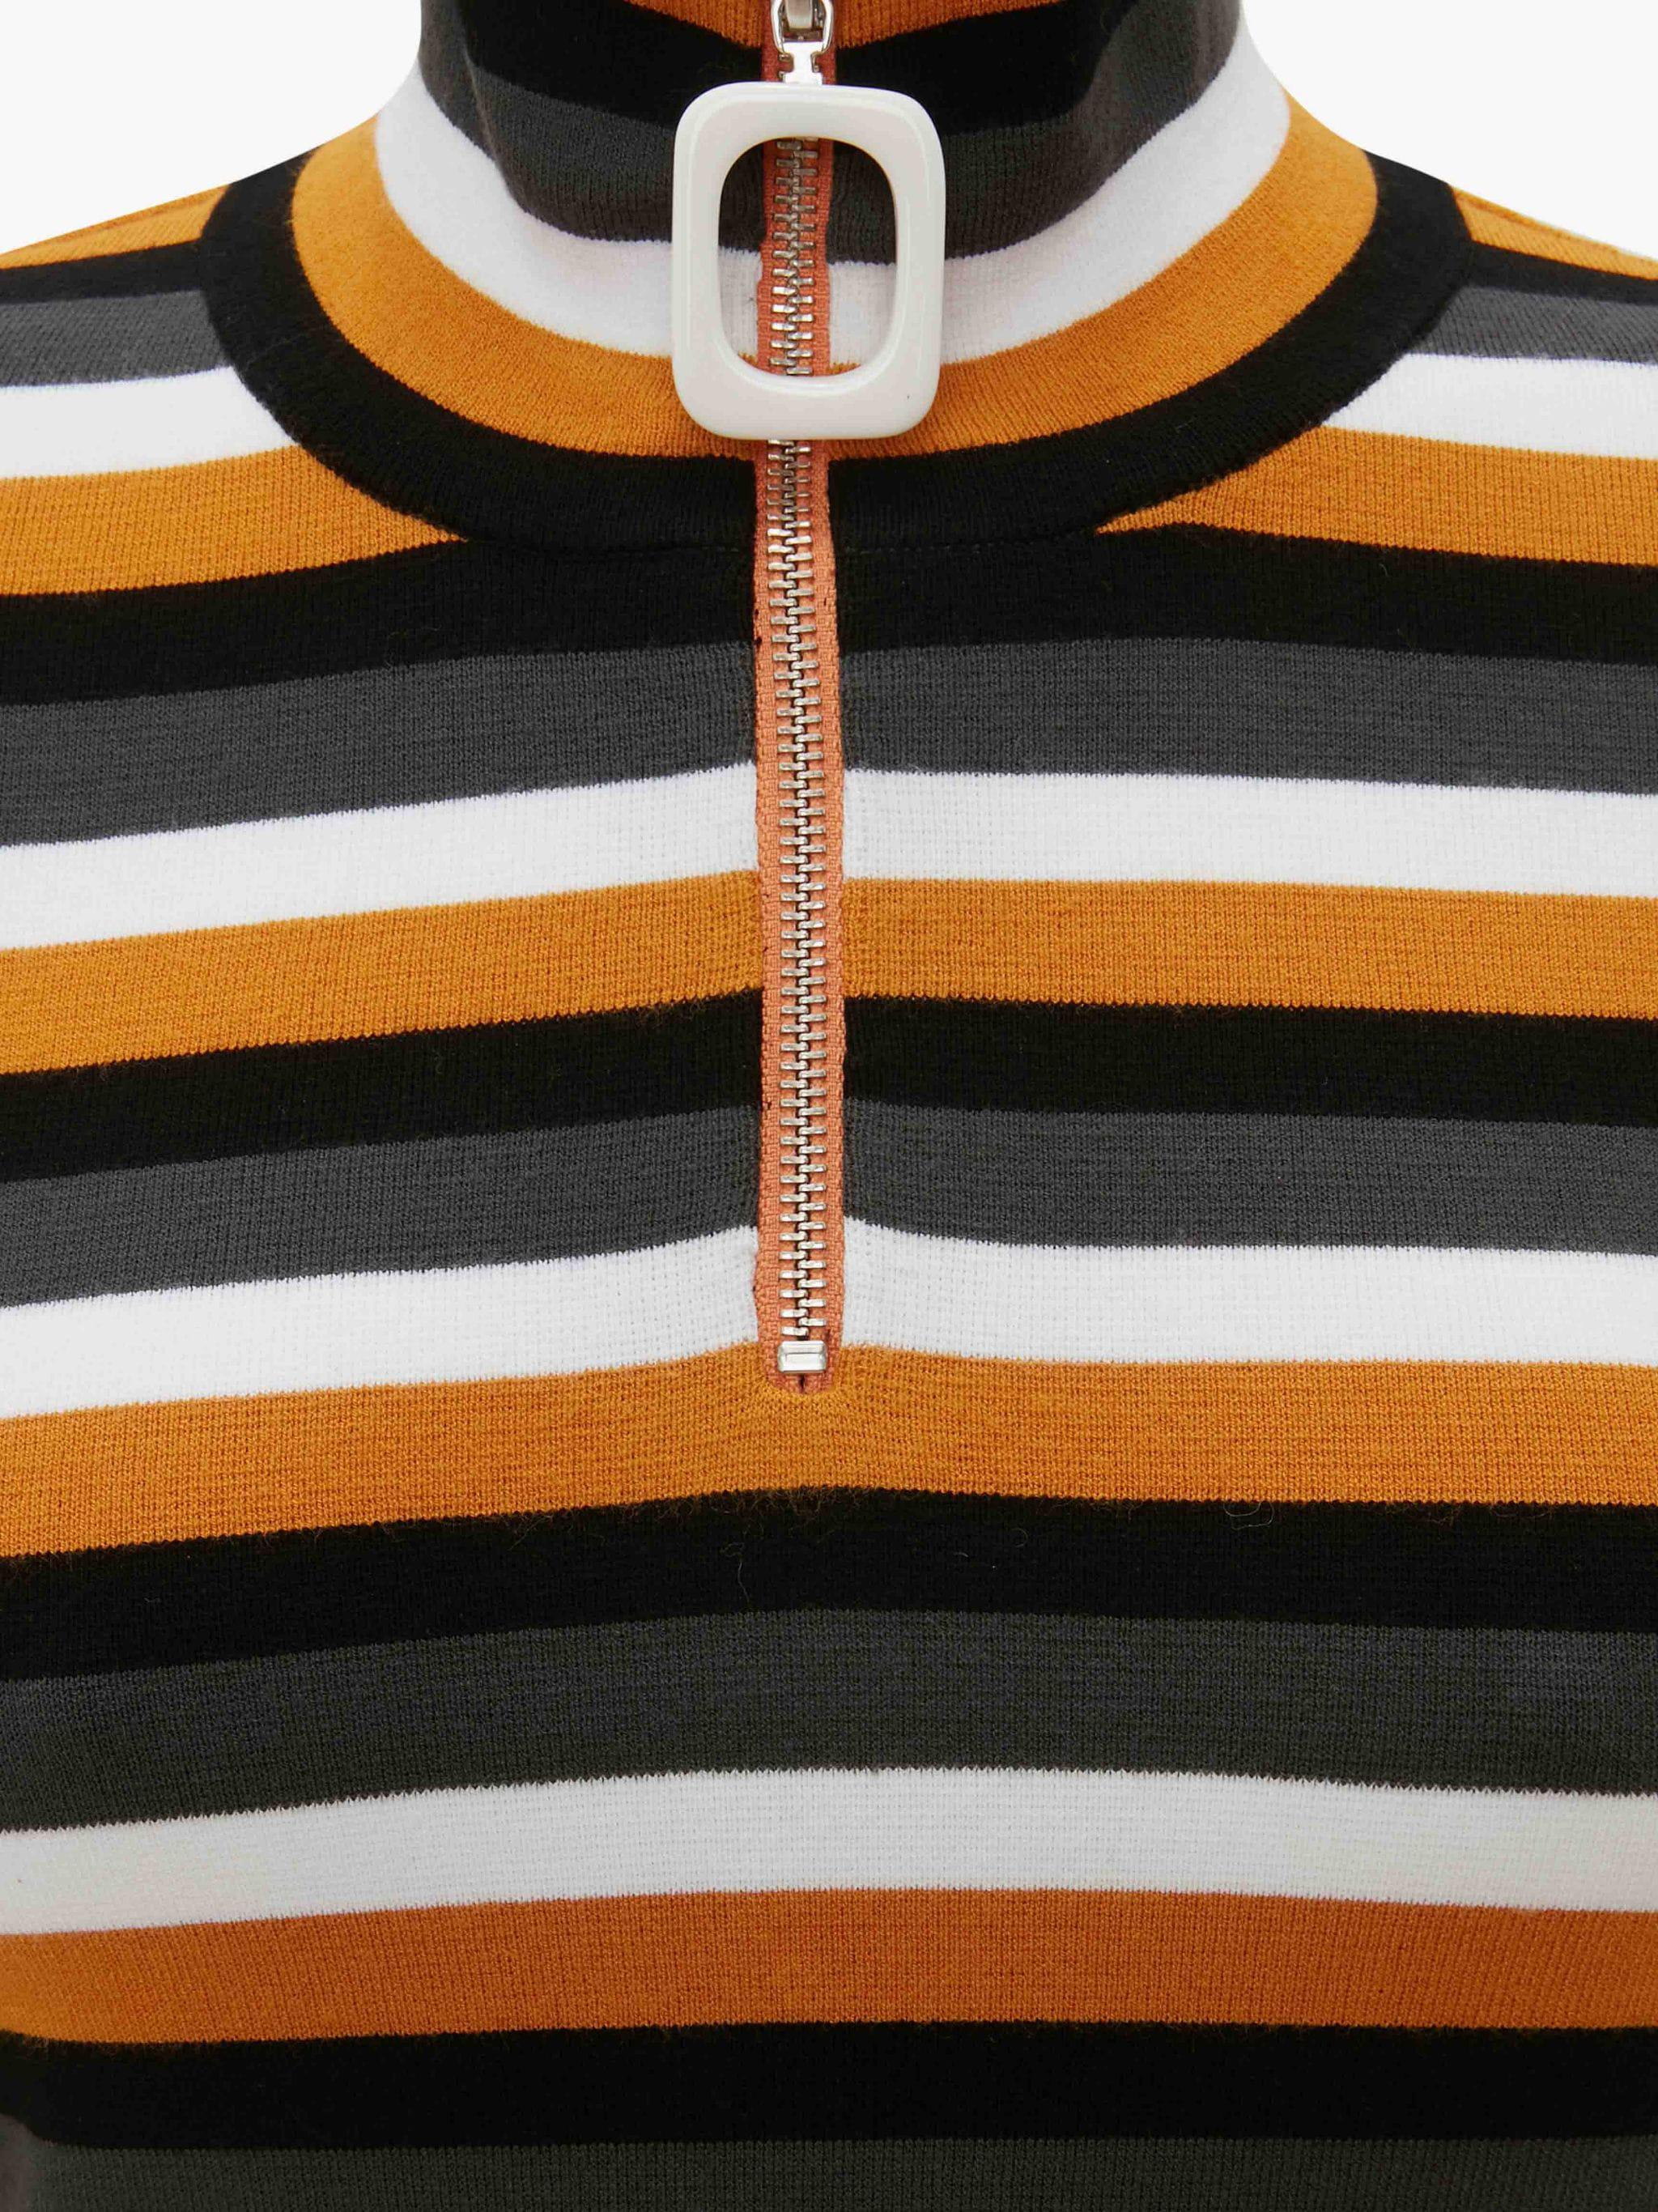 JWA PULLER FITTED HENLEY 4